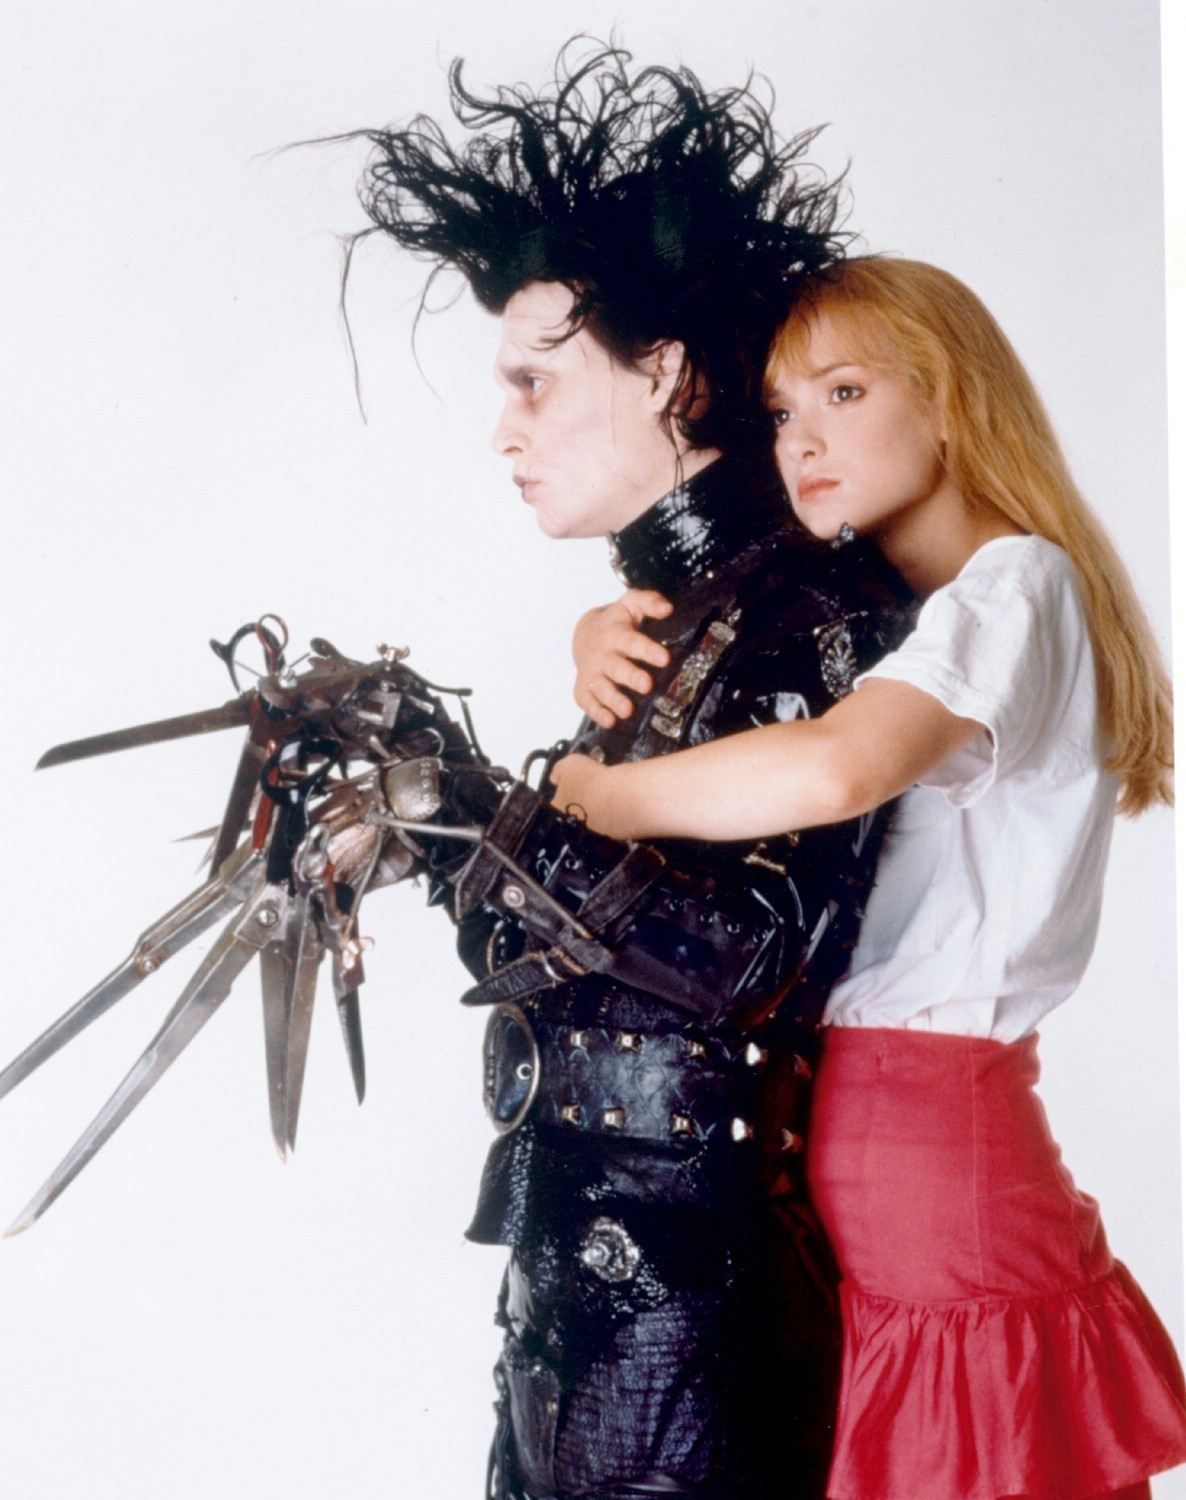 johnny depp as edward scissorhands Edward scissorhands achieves the nearly impossible feat of capturing the delicate flavor of a fable or fairy tale in a live-action movie the story follows a young man named edward (johnny depp), who was created by an inventor (vincent price, in one of his last roles) who died before he could give the poor creature a pair of human hands.